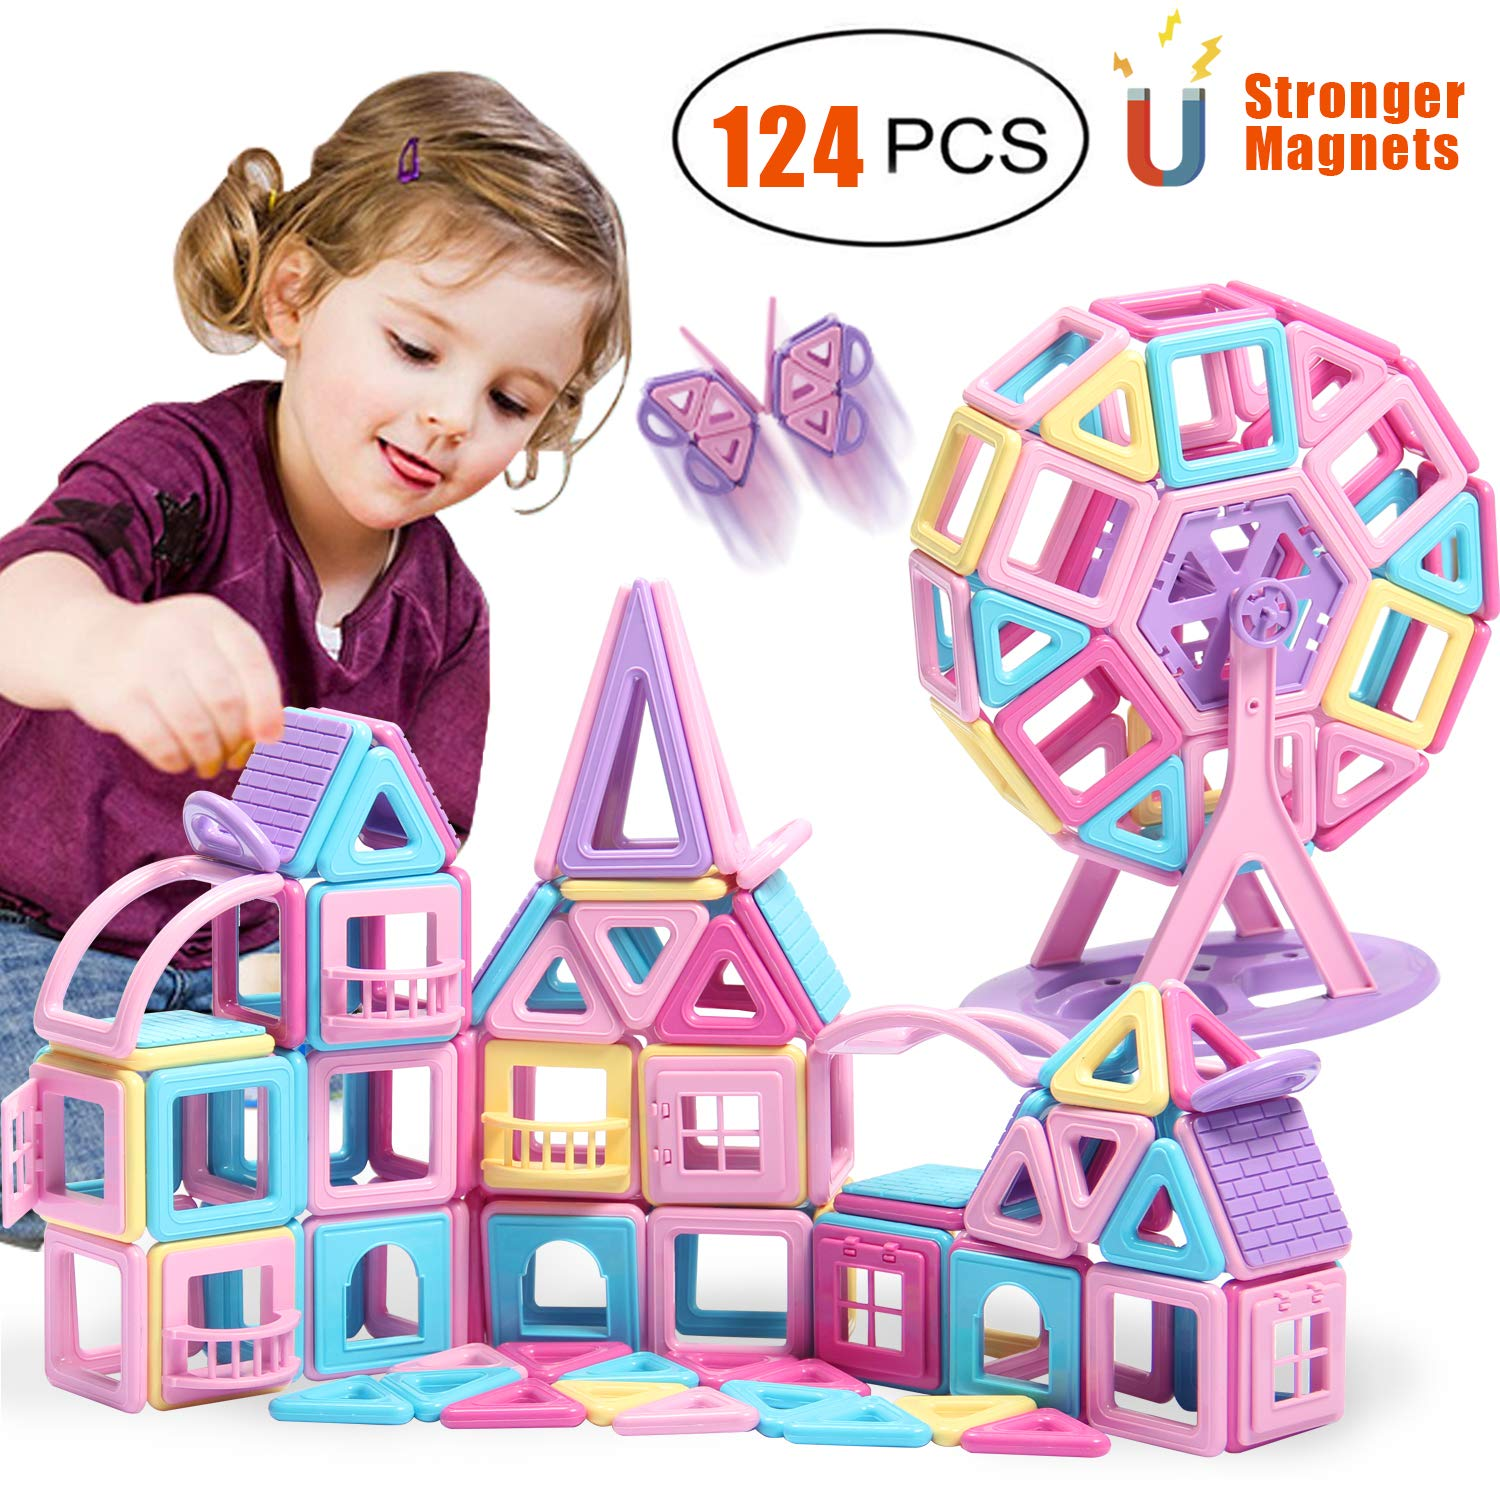 HOMOFY 124PCS Castle Magnetic Blocks Toys for Kids -3D Macaron Colors Learning & Development Building Blocks Figure Kits Toys for 3+ Years Old Girls Boys Toddlers by HOMOFY (Image #1)